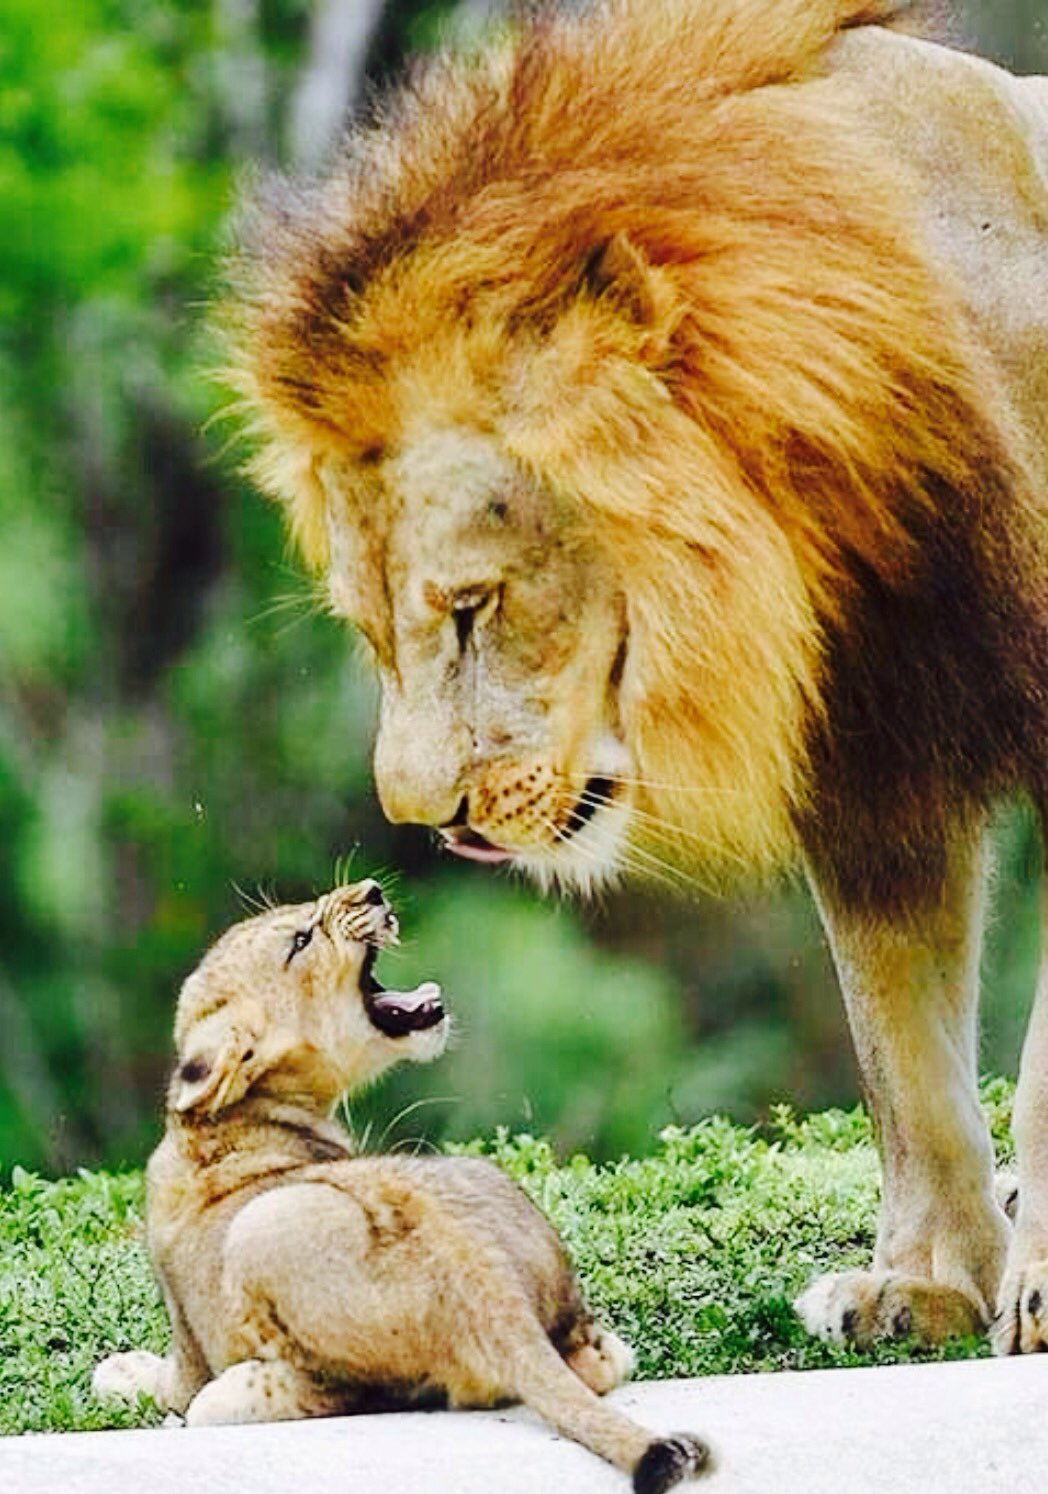 I know you're upset that you can't play lead guitar in a band, but being king of the jungle isn't so bad ...   Pic via @DerekPa16641676 https://t.co/xYiV3WZovm